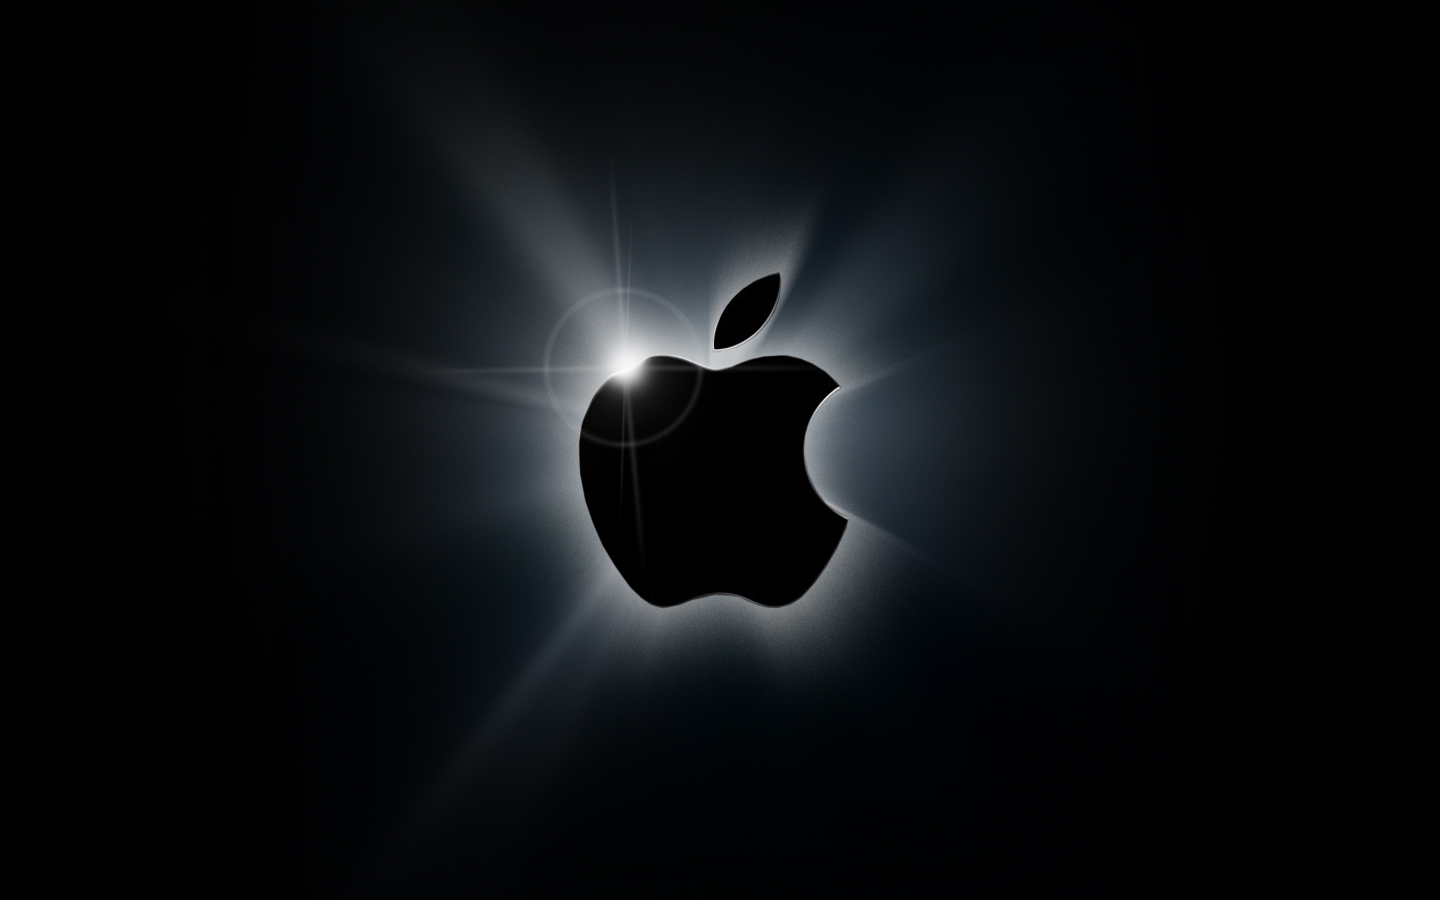 apple black logo wallpaper white apple logo wallpaper apple logo 1440x900